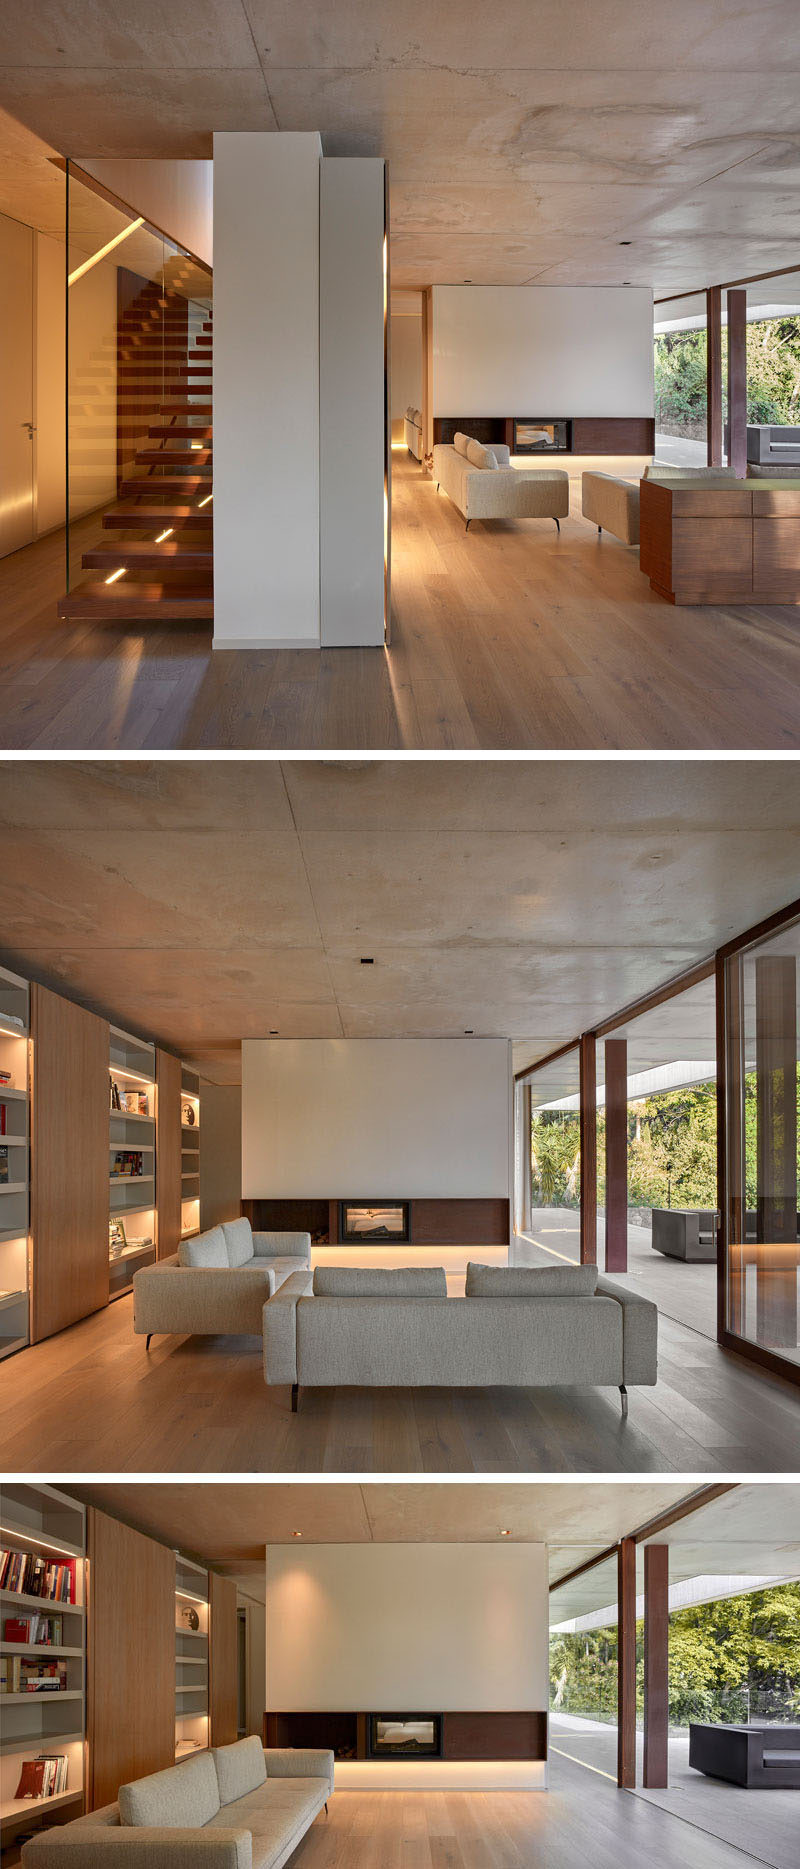 Stepping inside this modern house, the living room with wood flooring and a concrete ceiling, has a minimalist fireplace and a wall of shelving with highlighted sections to display personal items.